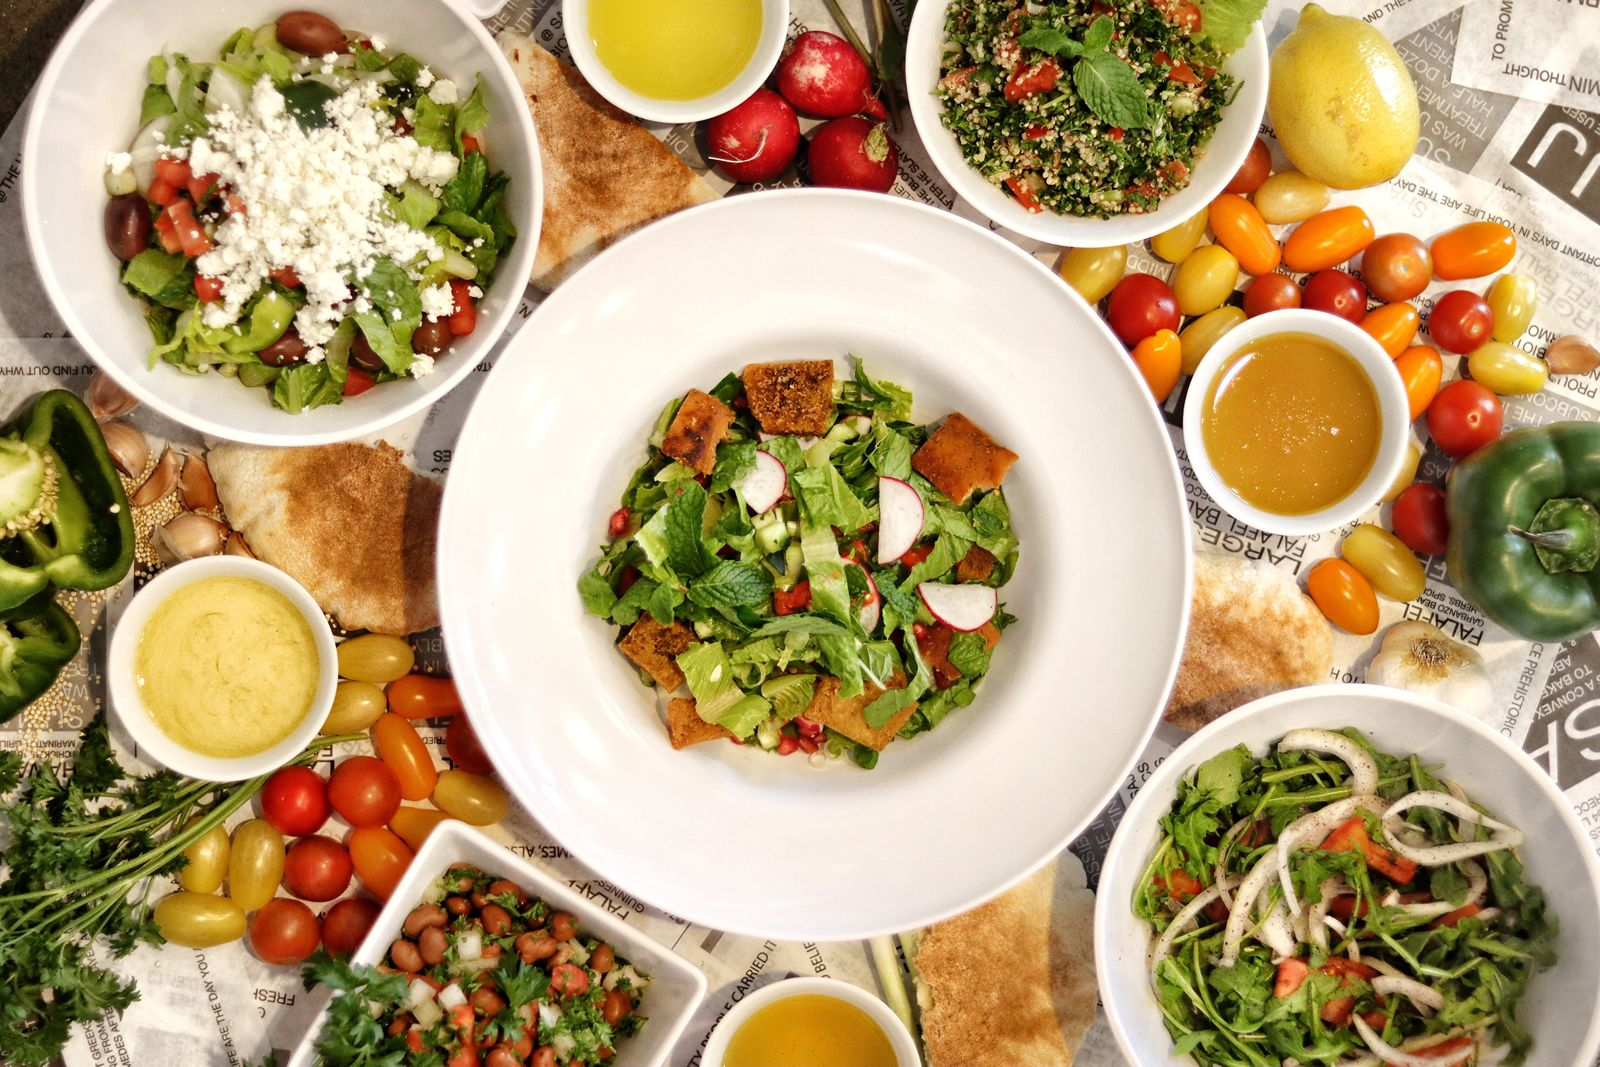 SAJJ Mediterranean has launched a new line of five Classic Mediterranean Salads available from its San Francisco Bay Area restaurants, which include a Fattoush Salad, Tabbouleh Salad, Greek Salad, SAJJ Rocca Salad, and Fava Bean Salad.